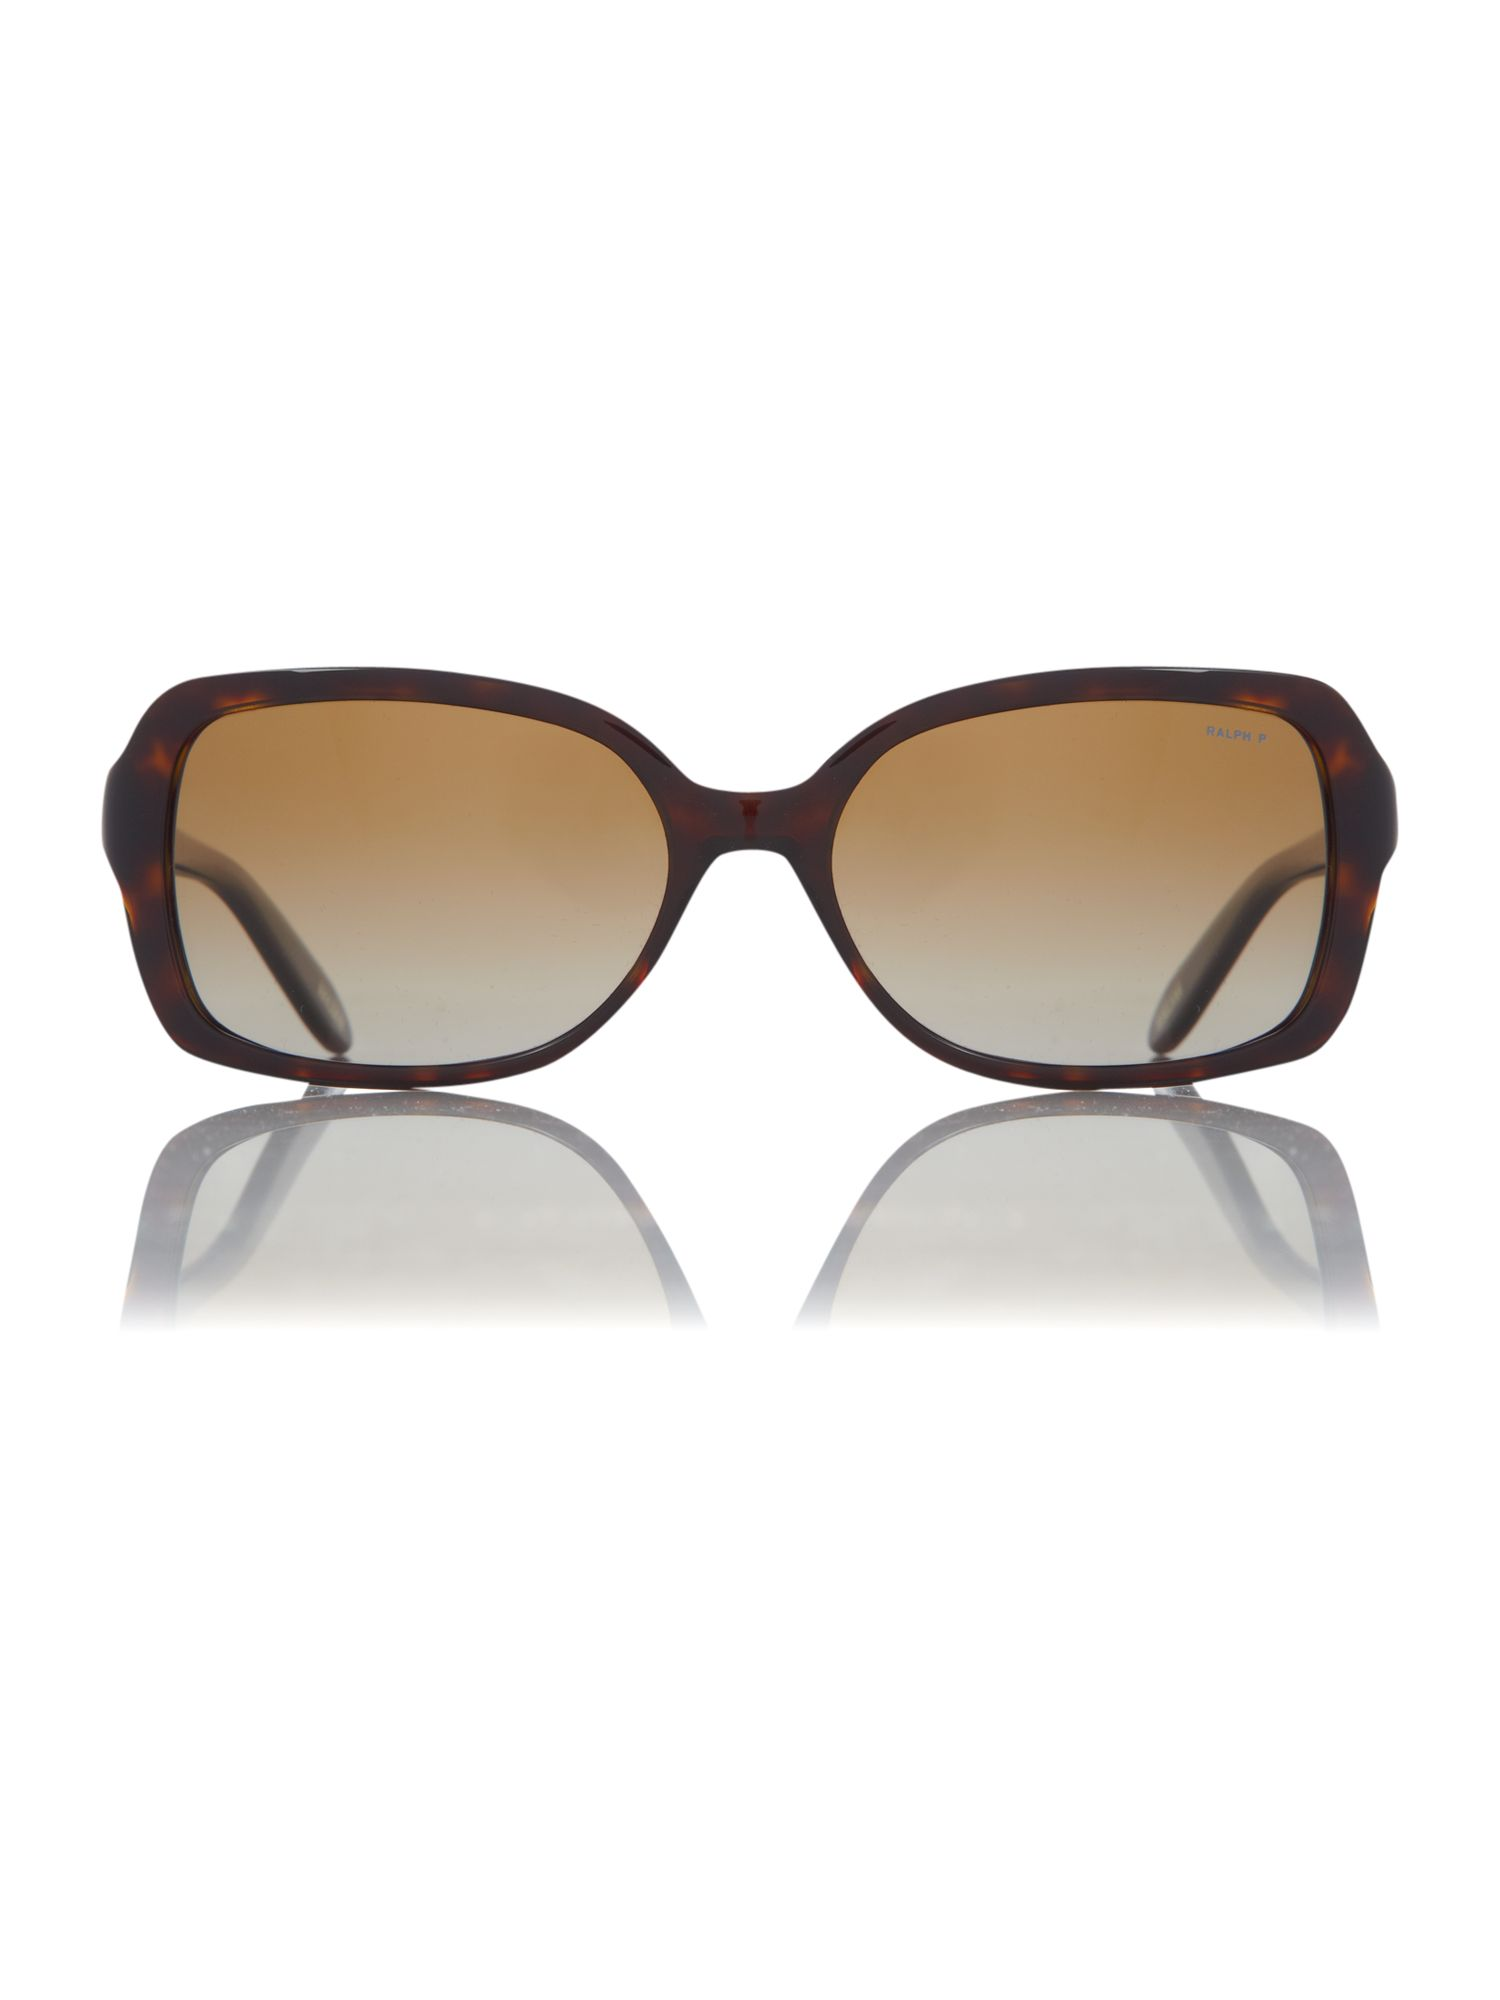 Ladies RA5130 Tortoise Sunglasses